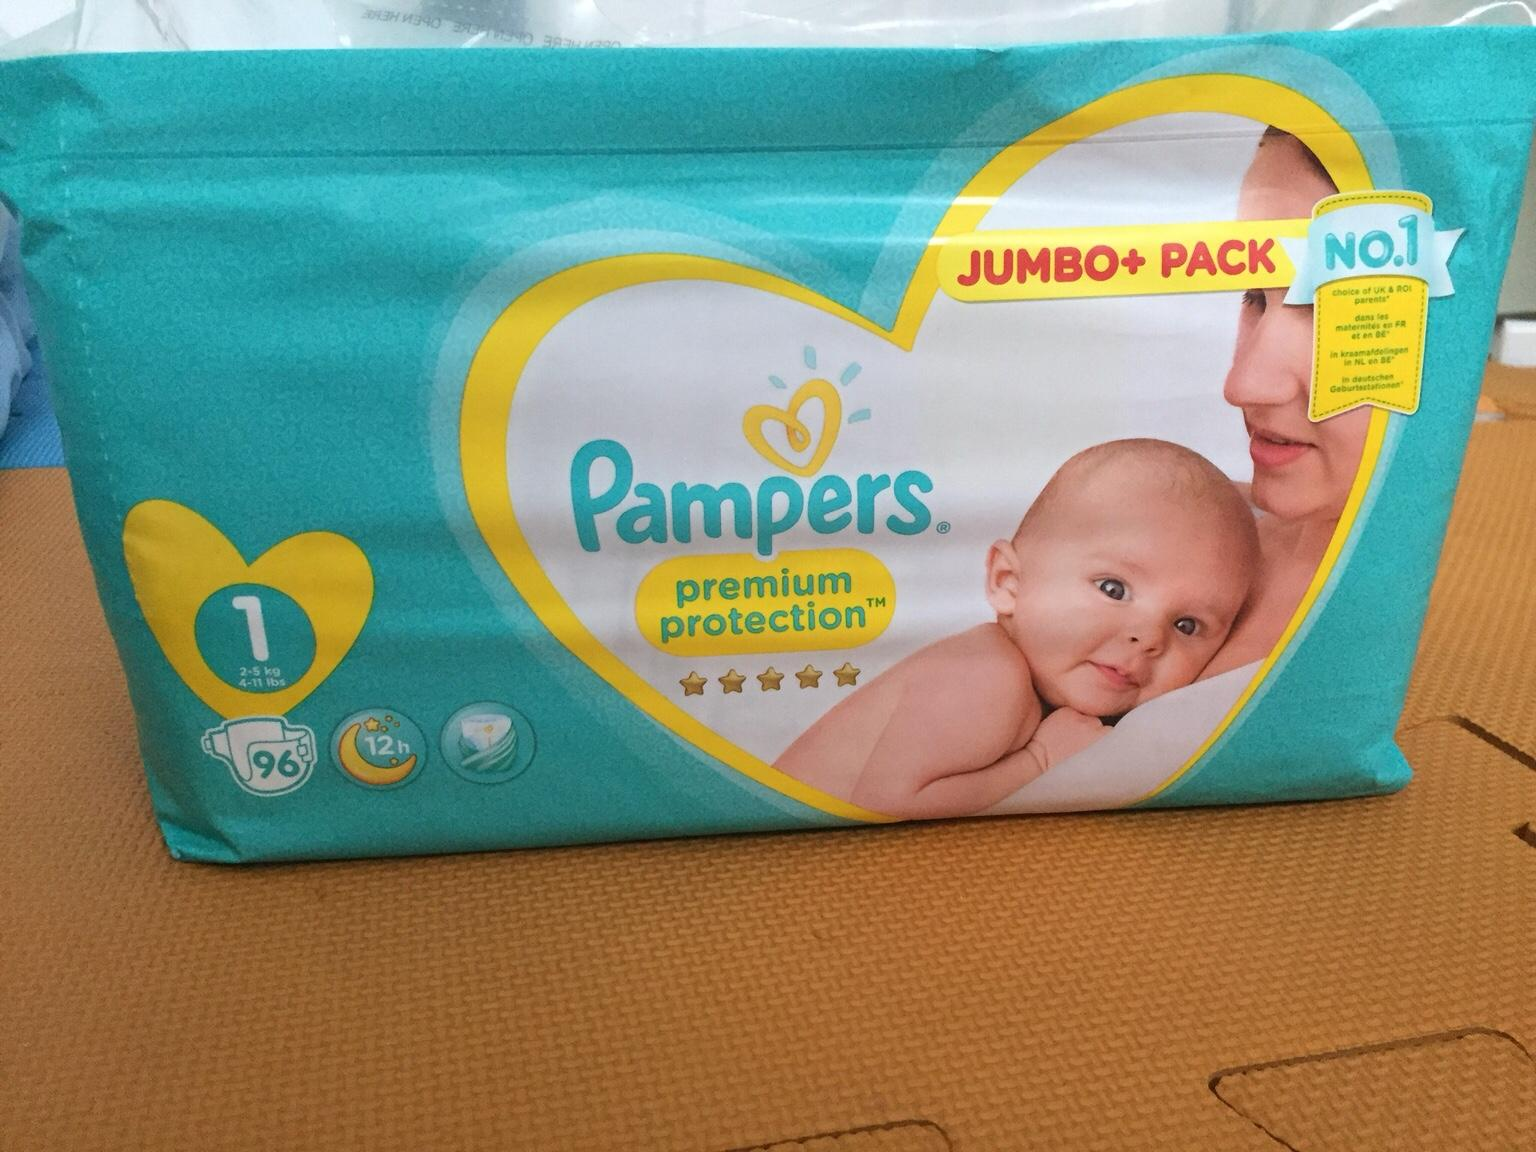 86 Nappies Jumbo Pack Pampers New Baby Size 2